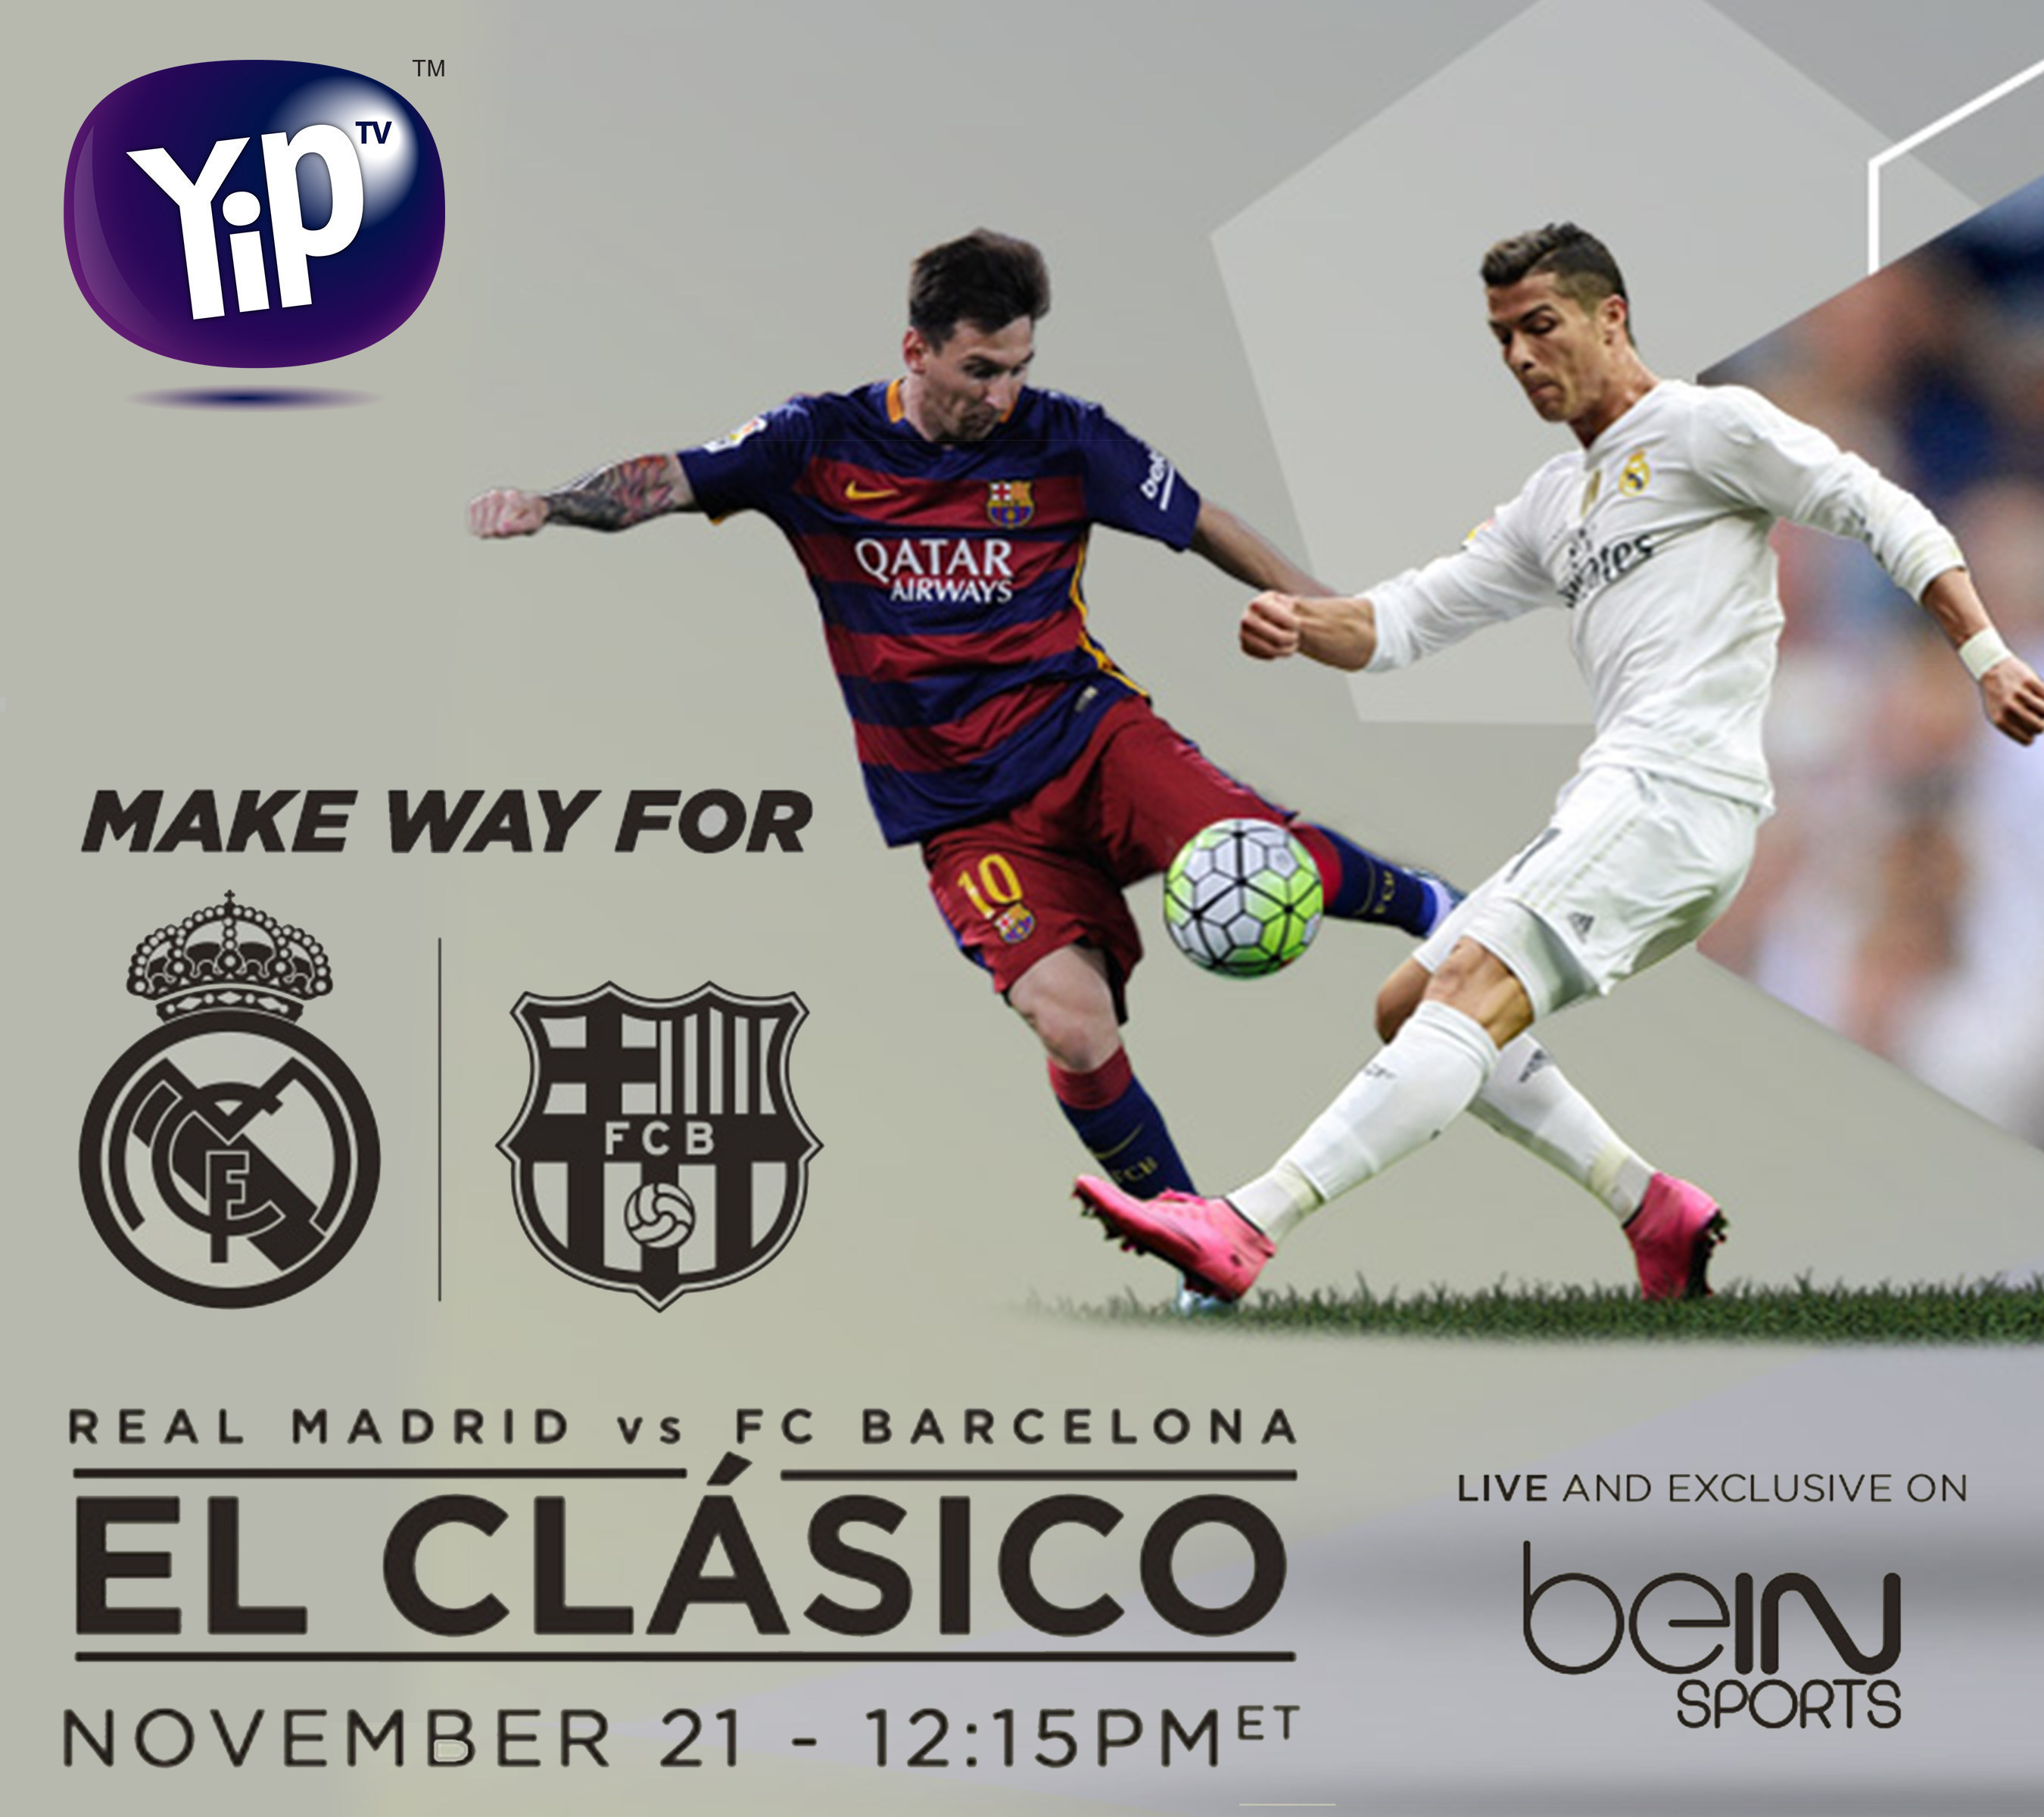 YipTV will kick and punch into this weekend with El Clasico and boxing @GoldenBoyBoxing